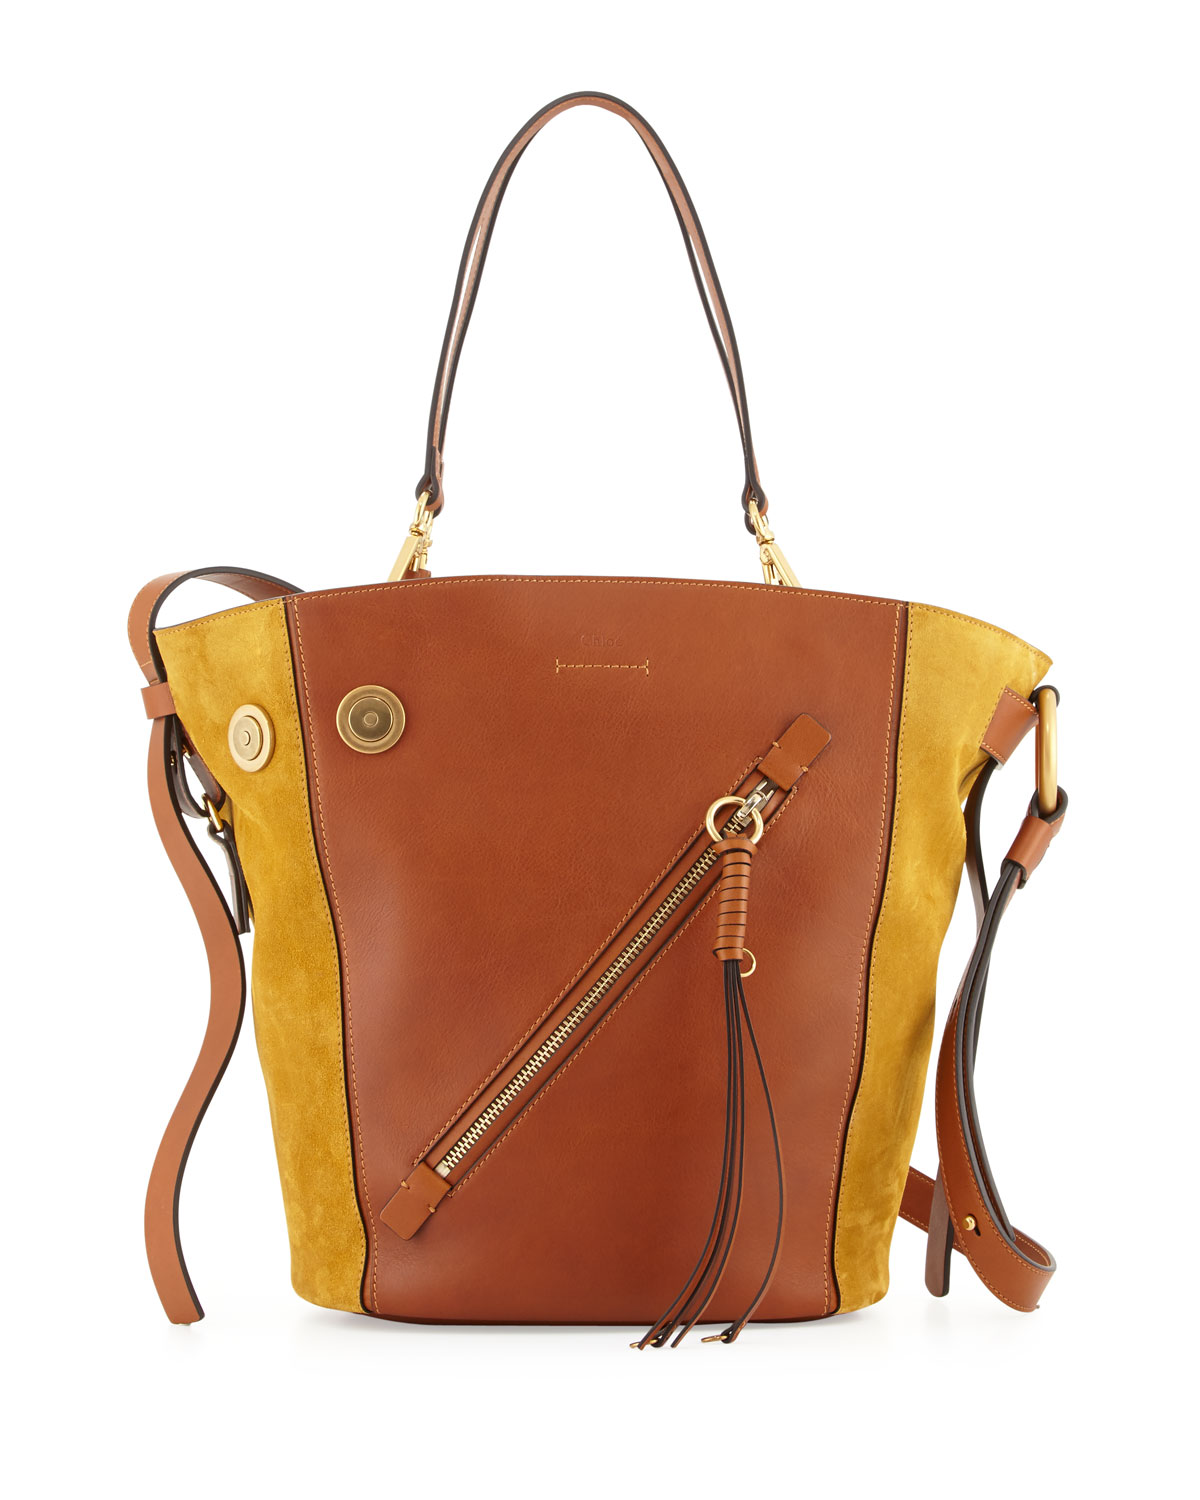 Myer Medium Leather Suede Tote Bag